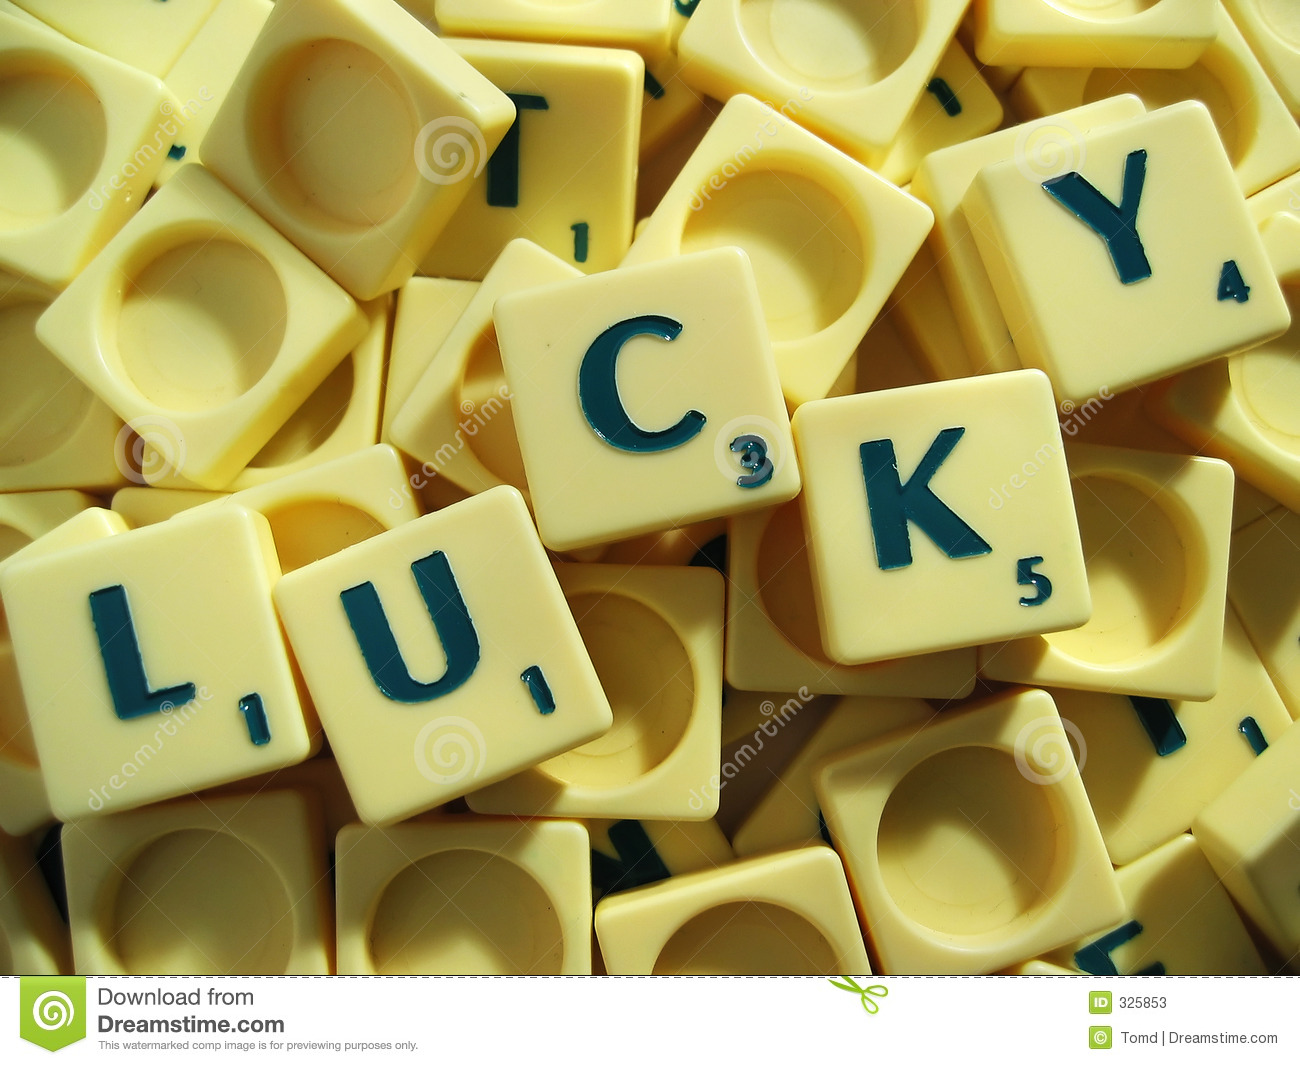 Scrabble tiles in a pile with the word 'lucky' spelled out.